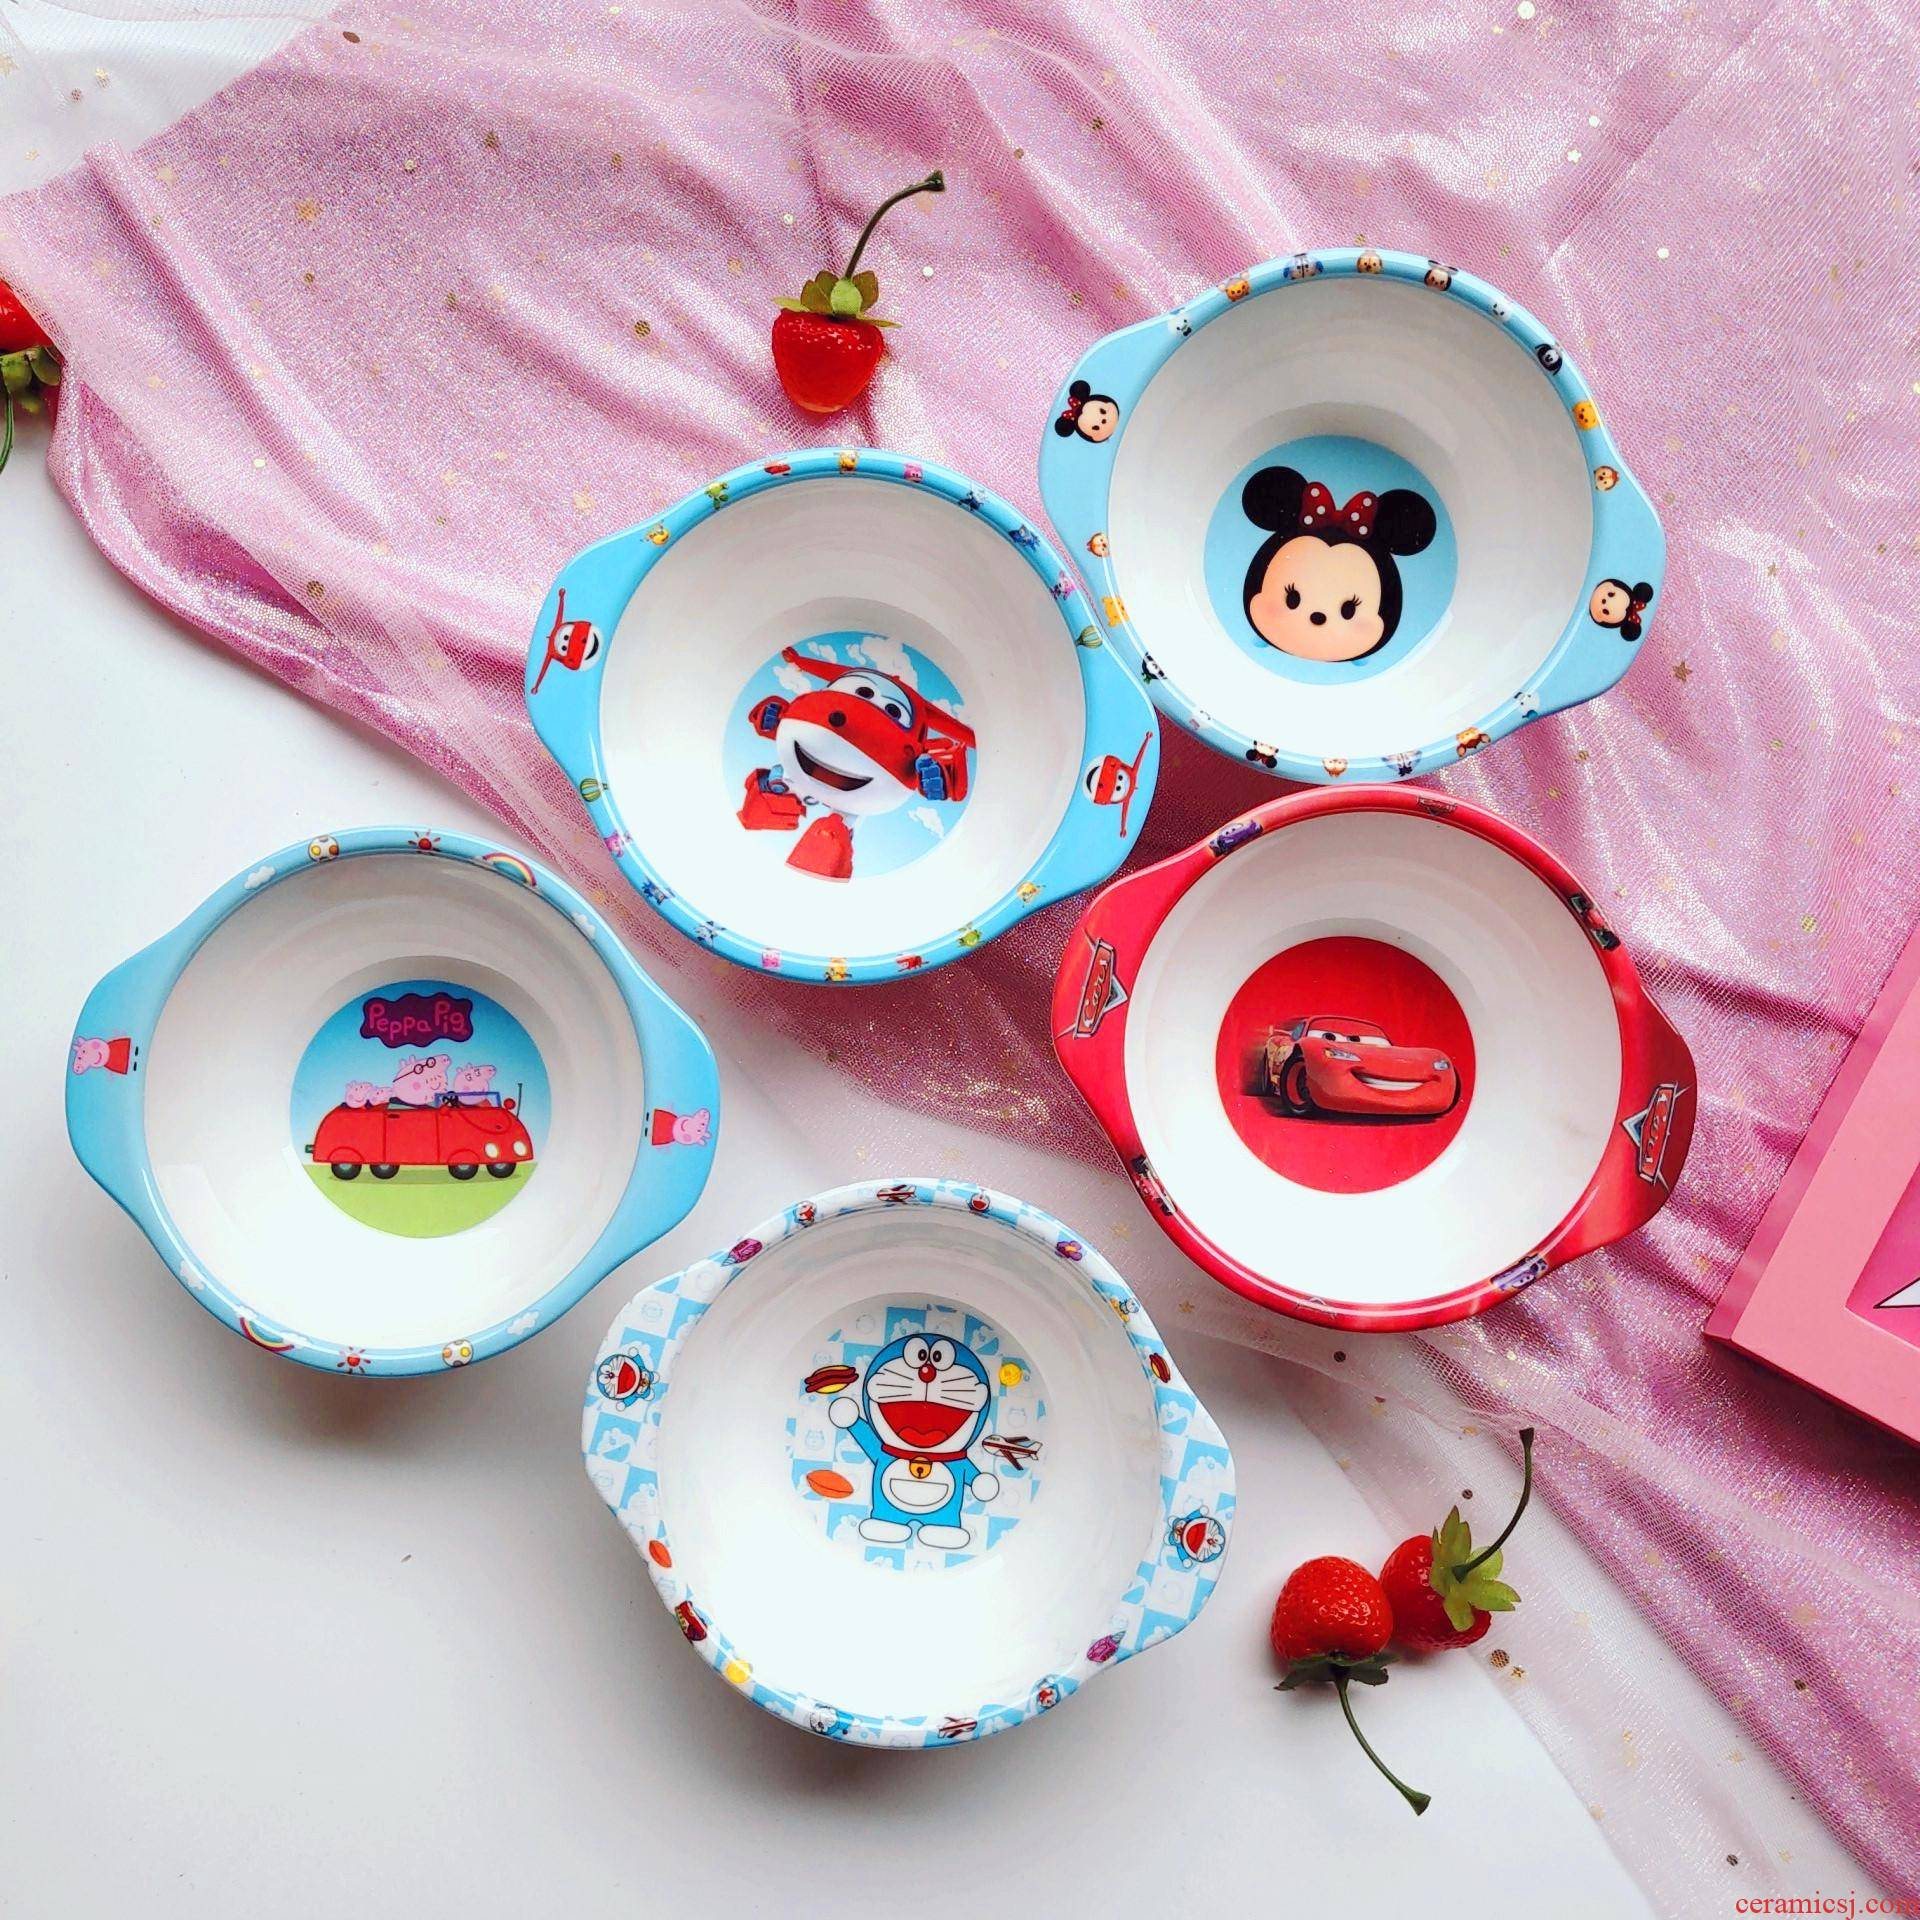 Express cartoon baby ears to use melamine porcelain - like infant park to eat children small bowl of suction cups drop hot dishes